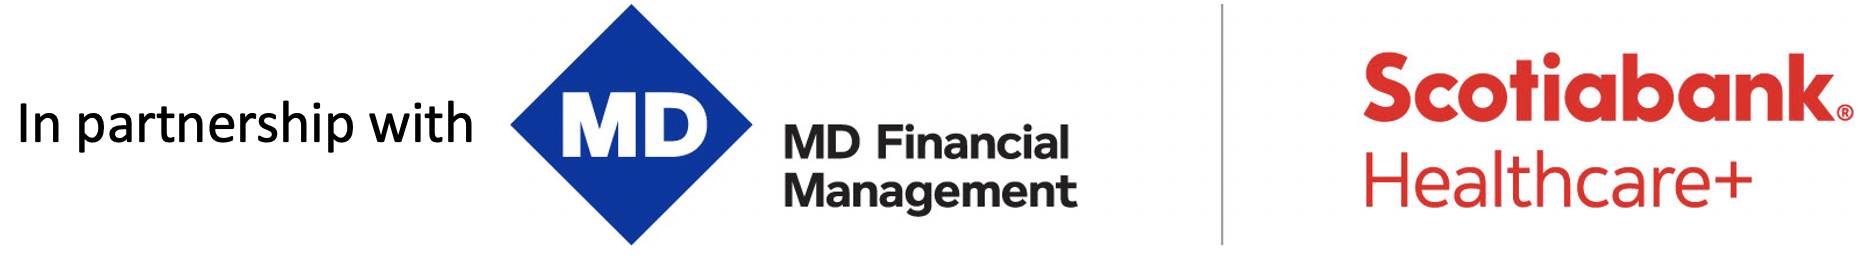 In partnership with Scotiabank Healthcare+ and MD Financial Management